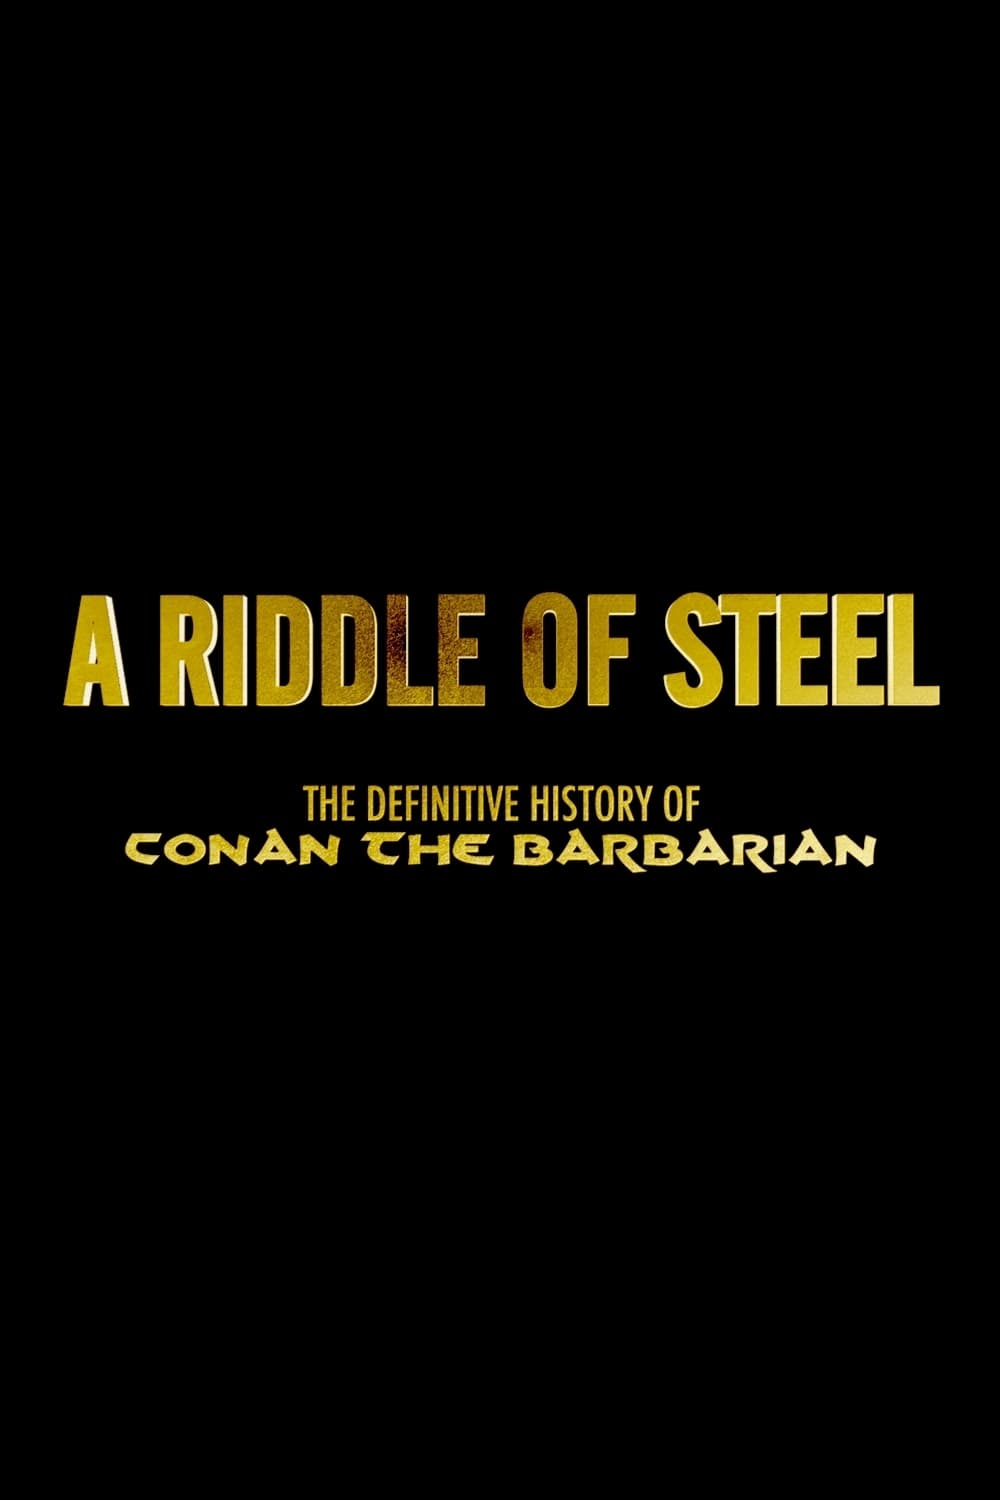 A Riddle of Steel: The Definitive History of Conan the Barbarian (2019)